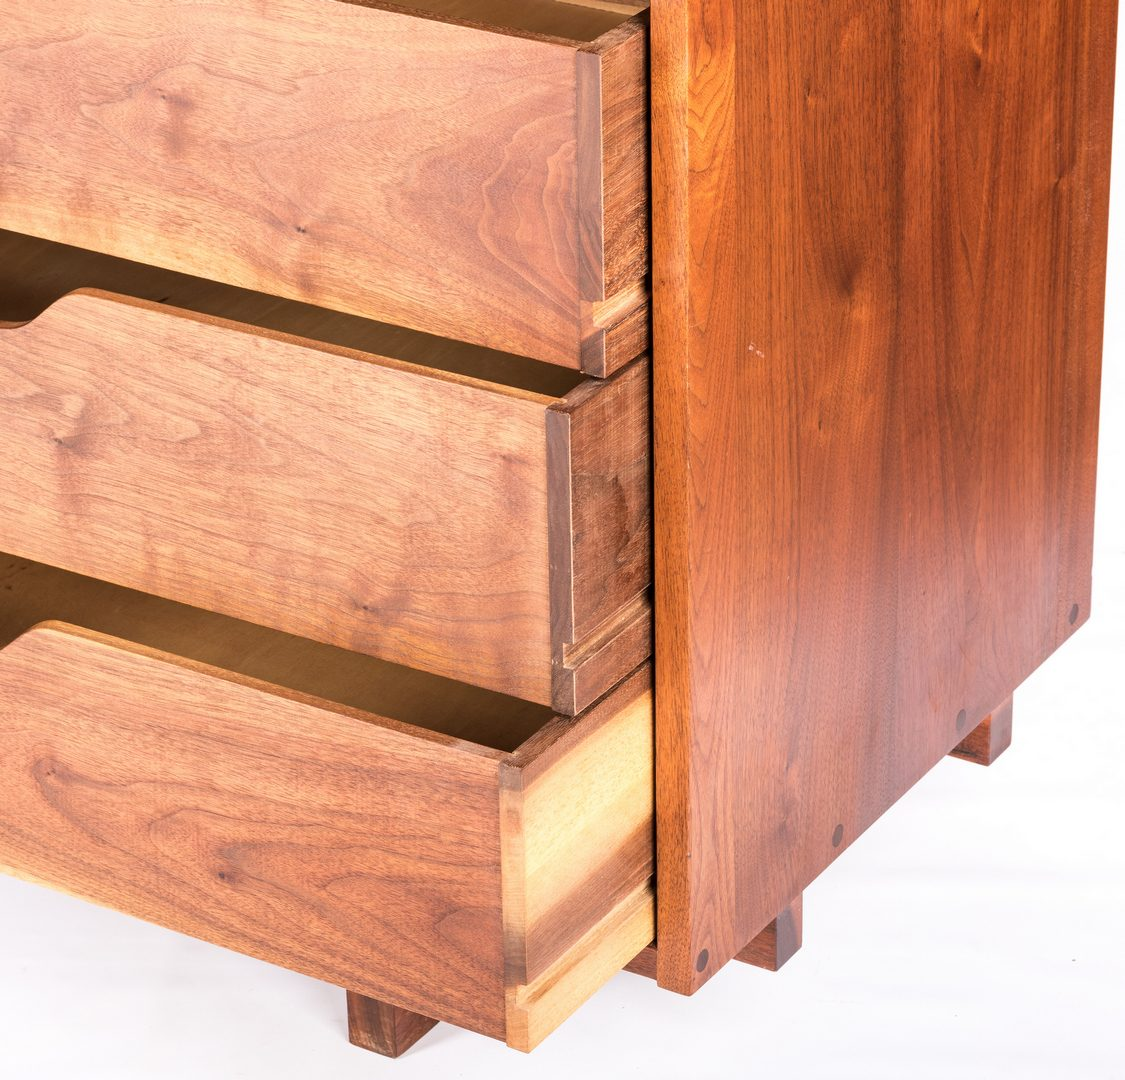 Lot 456: George Nakashima Walnut Credenza